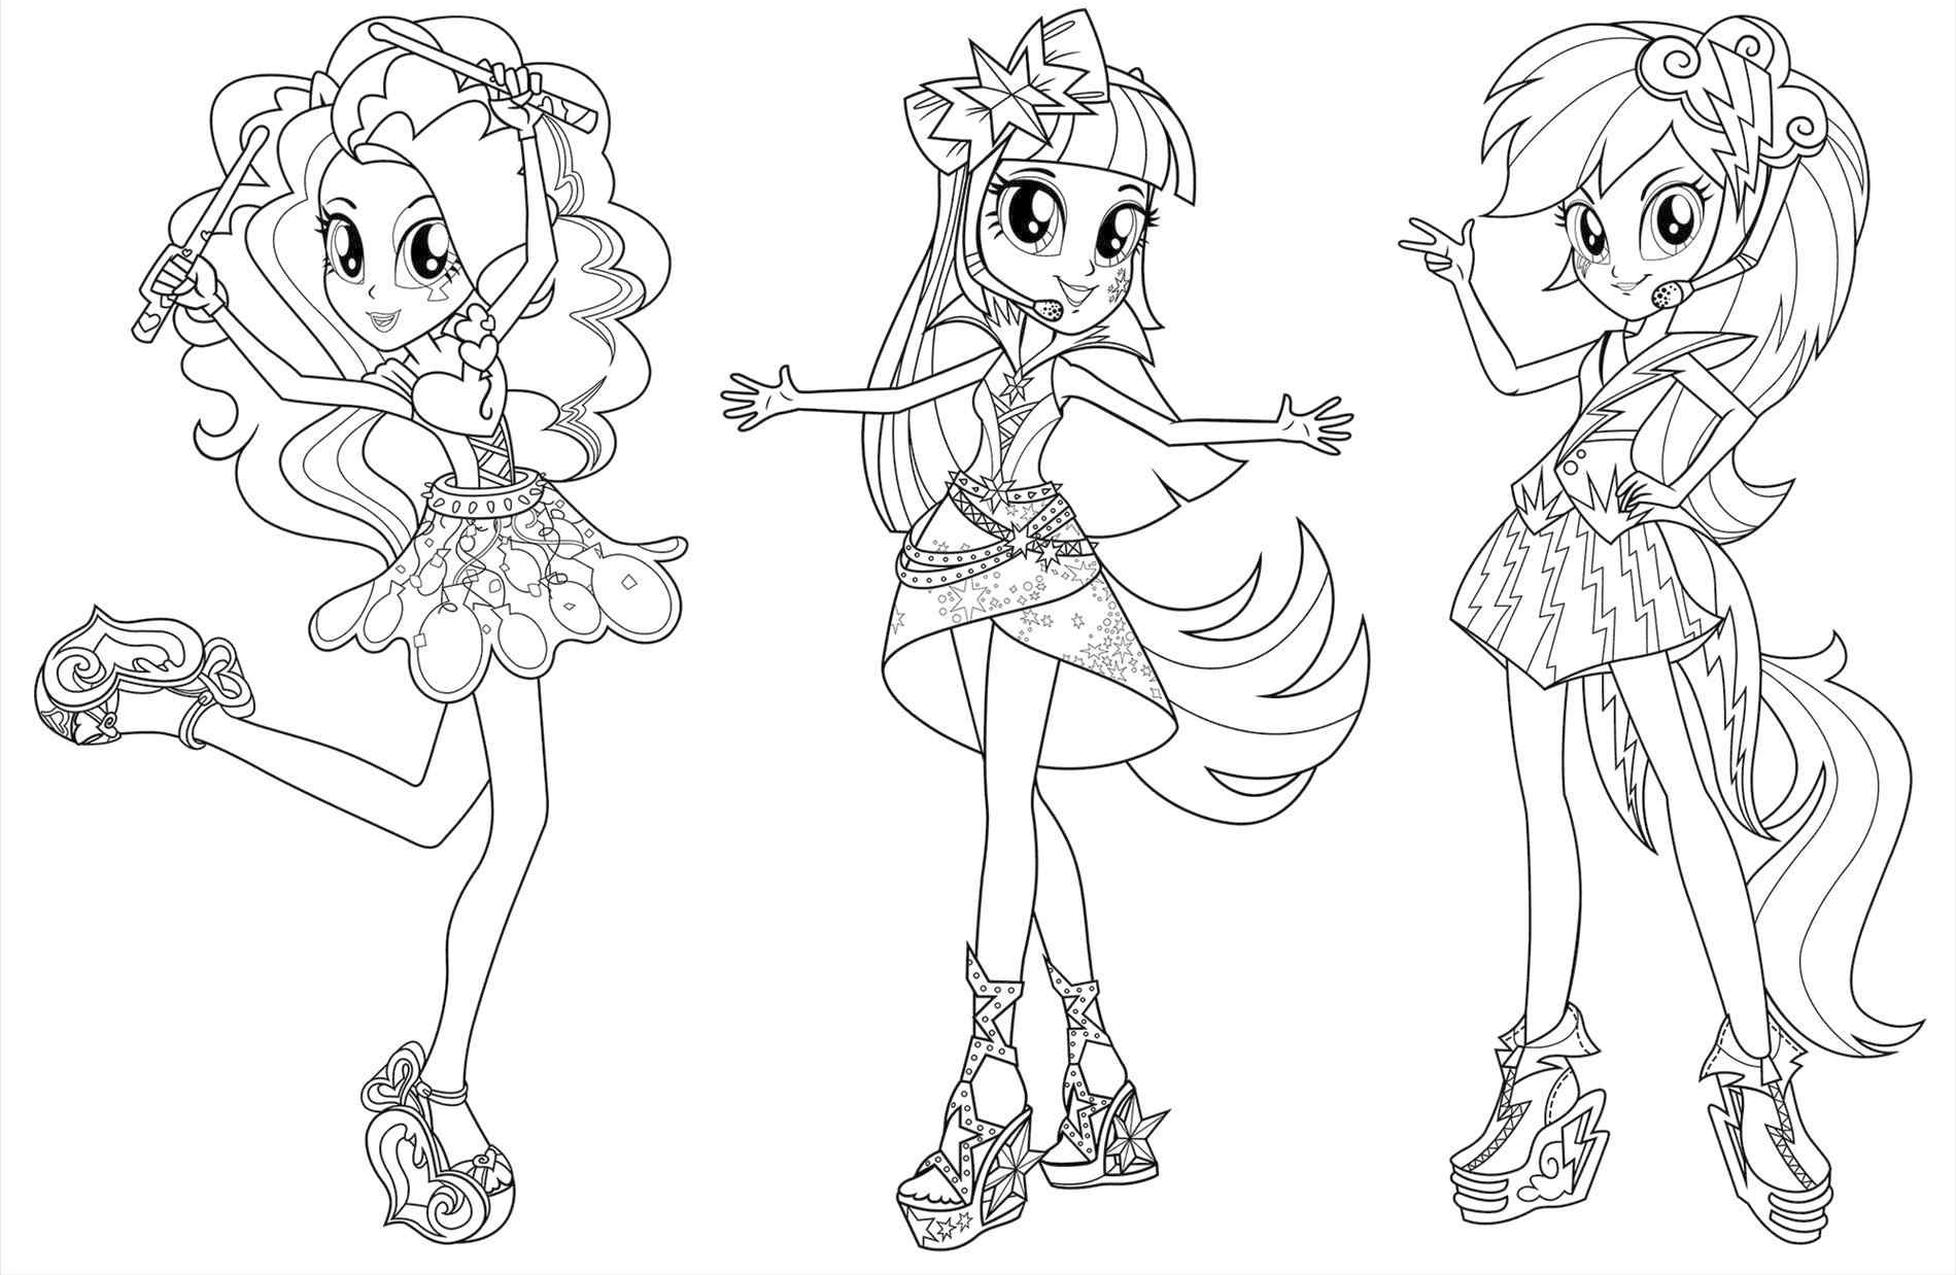 Equestria Girls Coloring Pages Ready to Perform on Stage